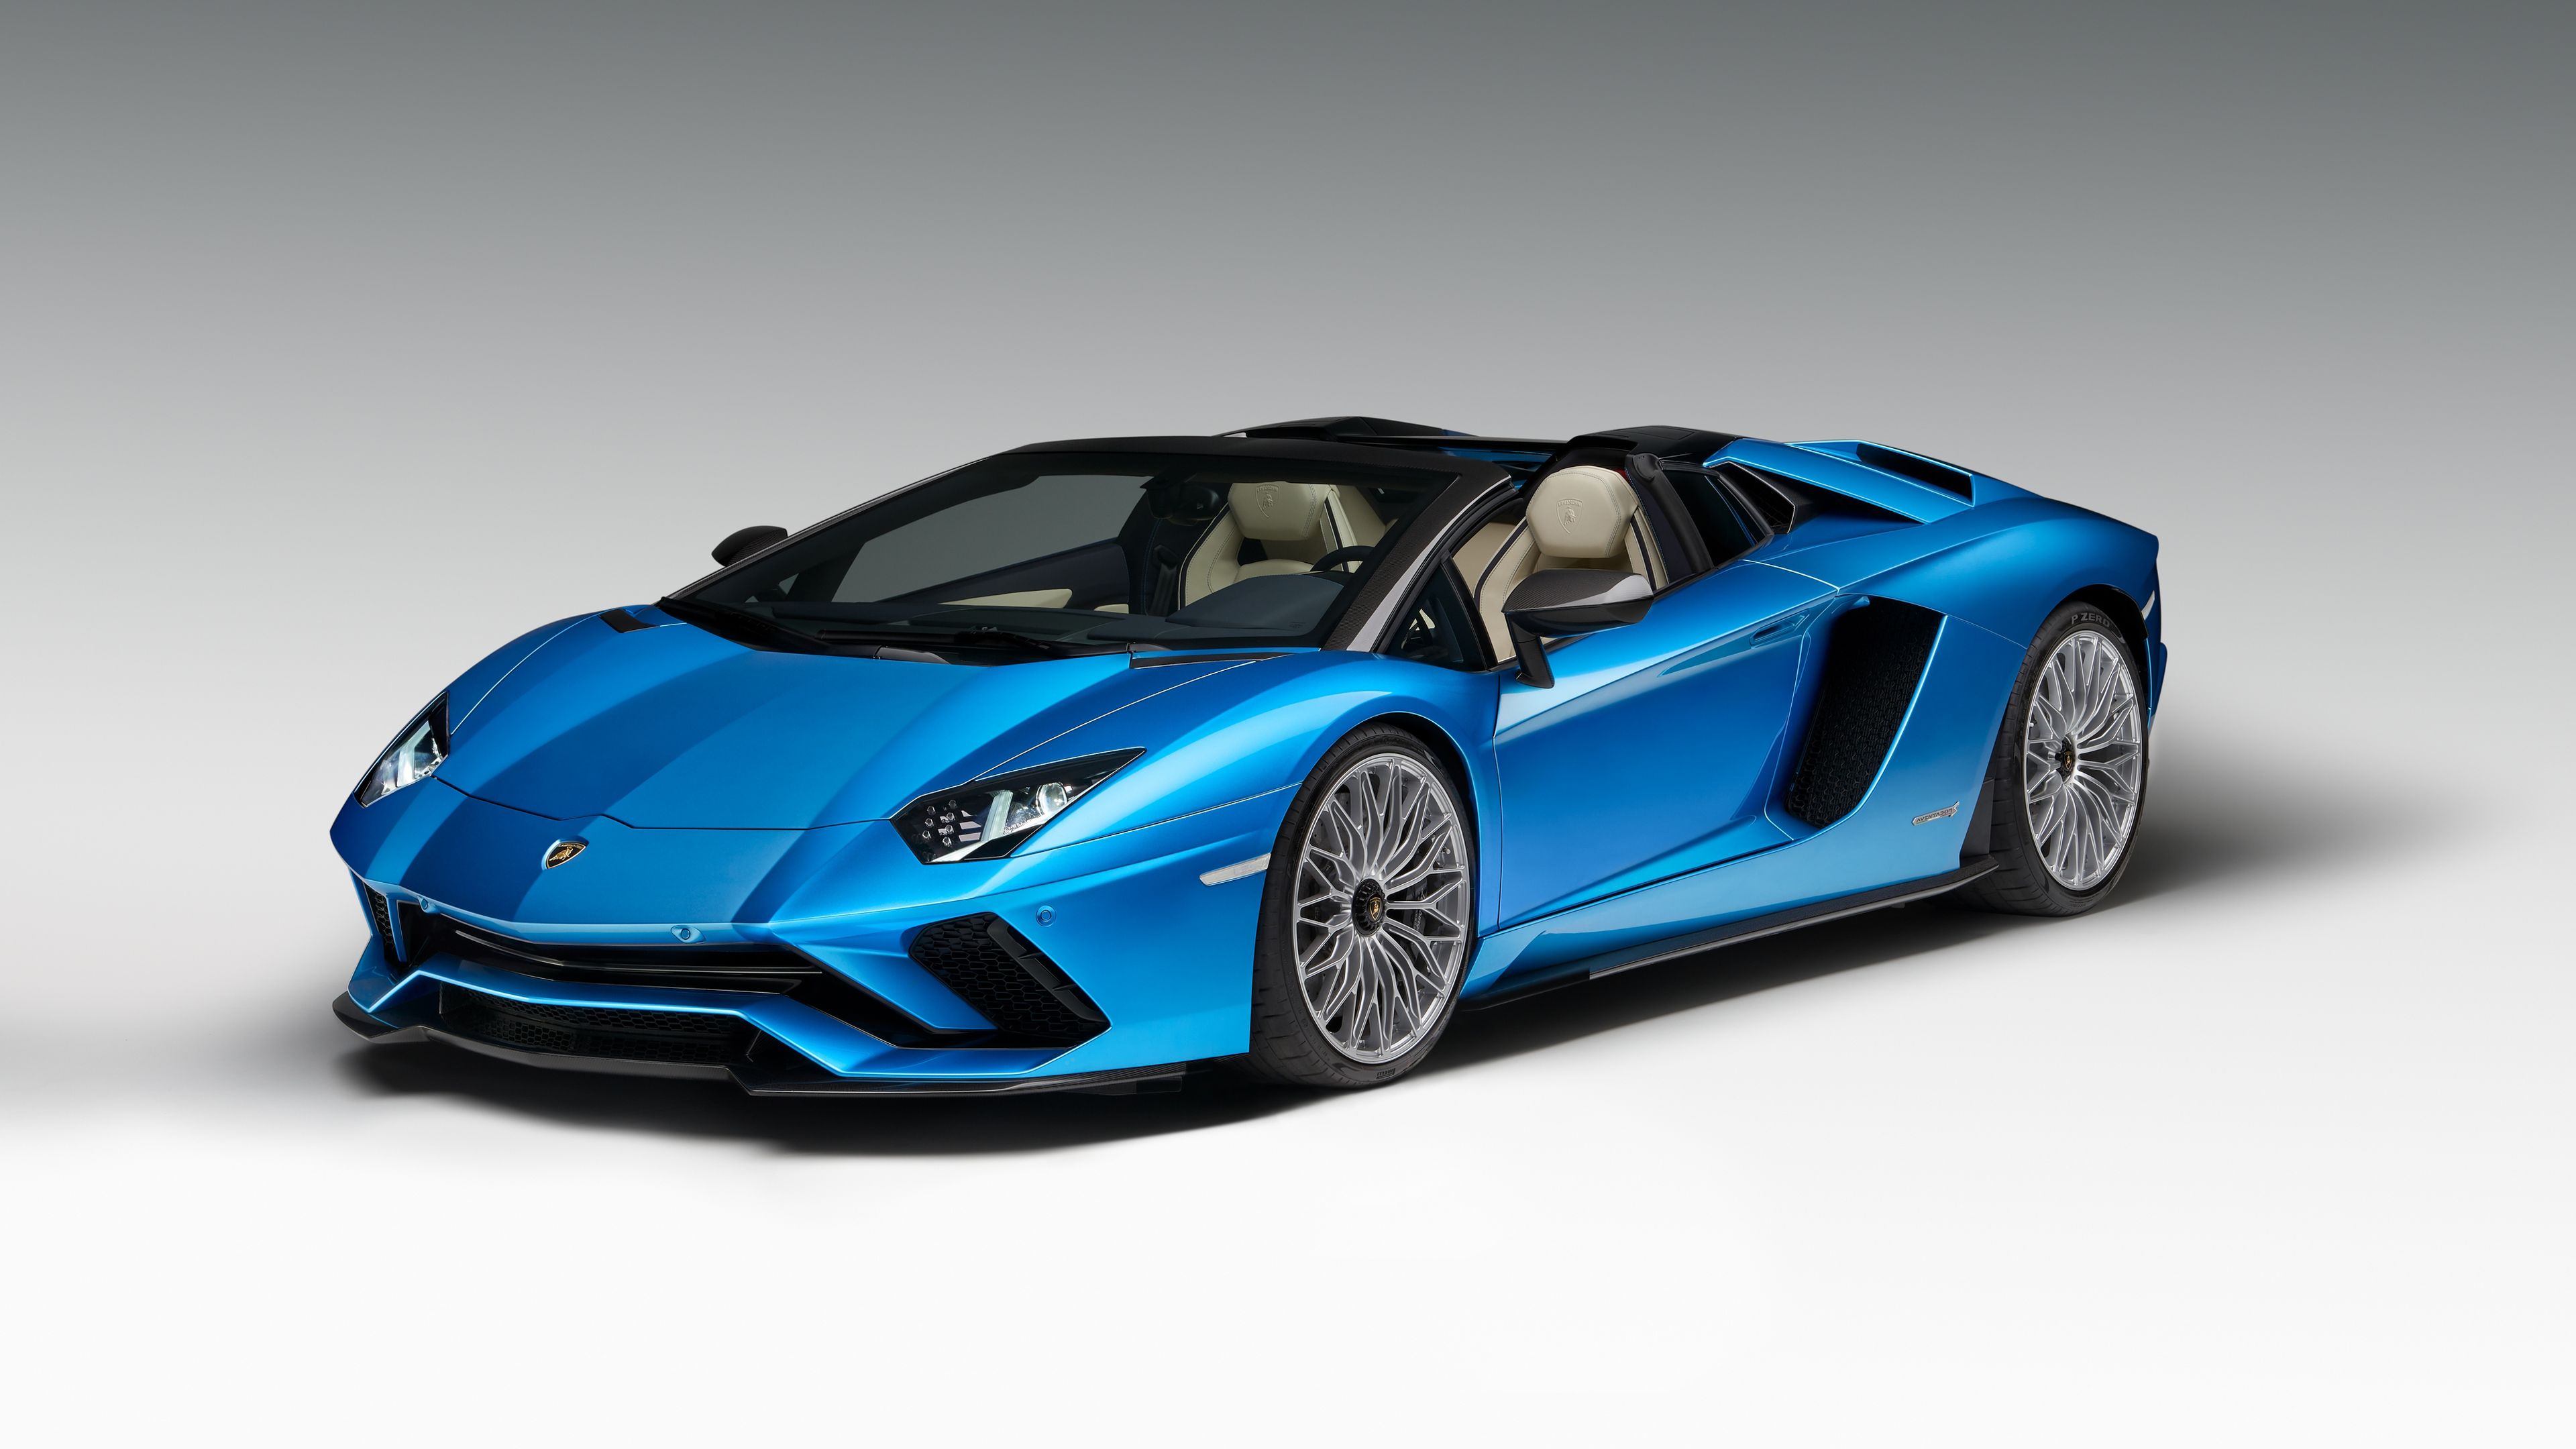 2018 lamborghini aventador s roadster 4k wallpaper | hd car